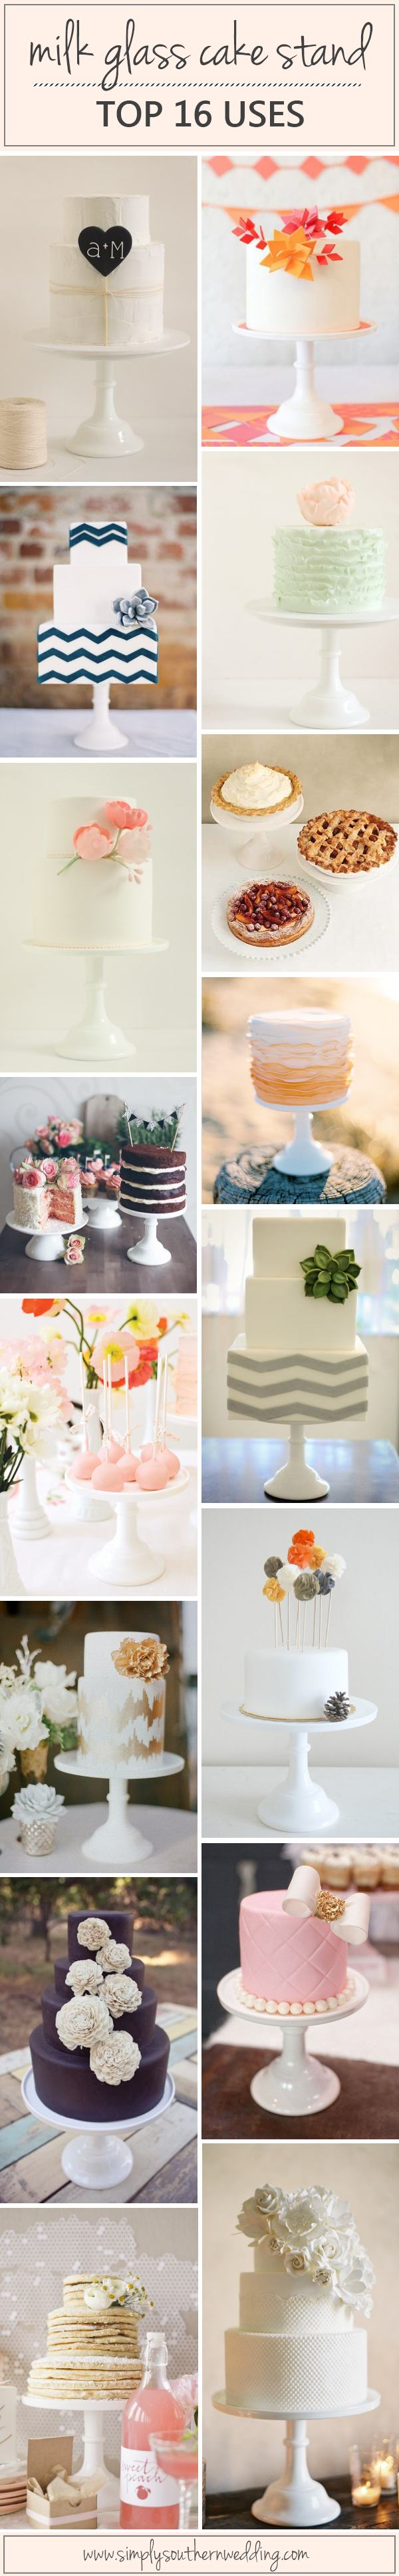 Small Wedding Cakes - White Milk Glass Cake Stand